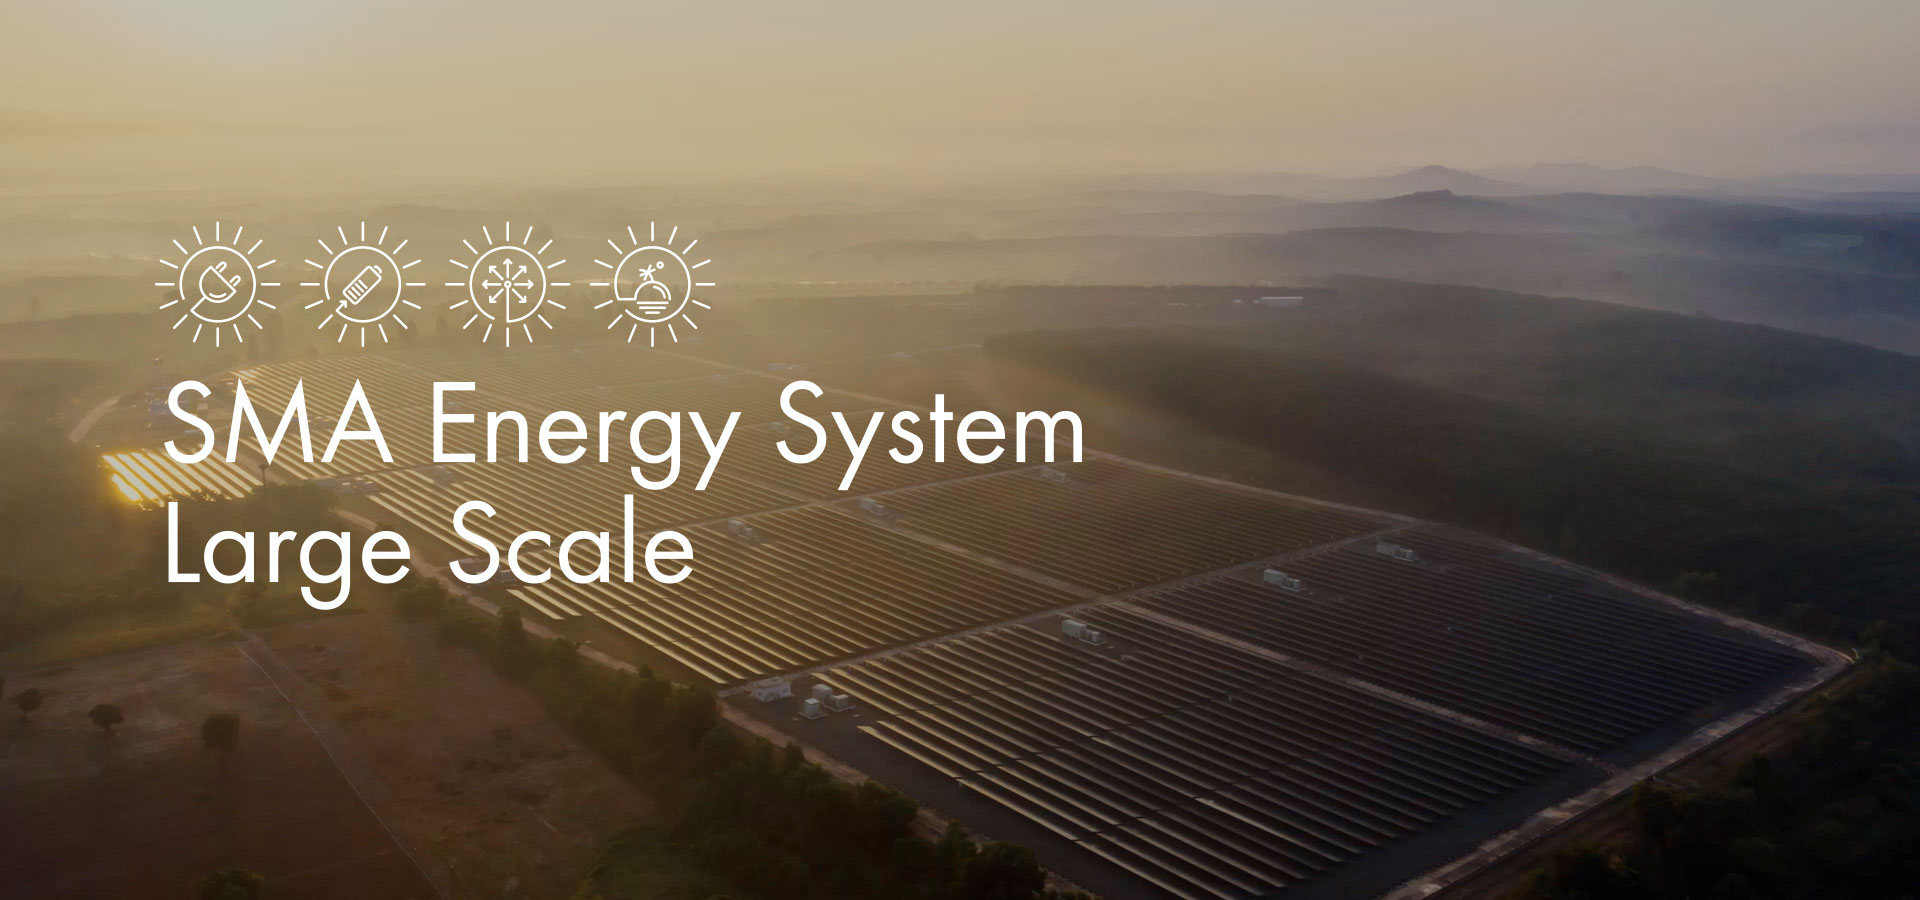 SMA Energy System Large Scale